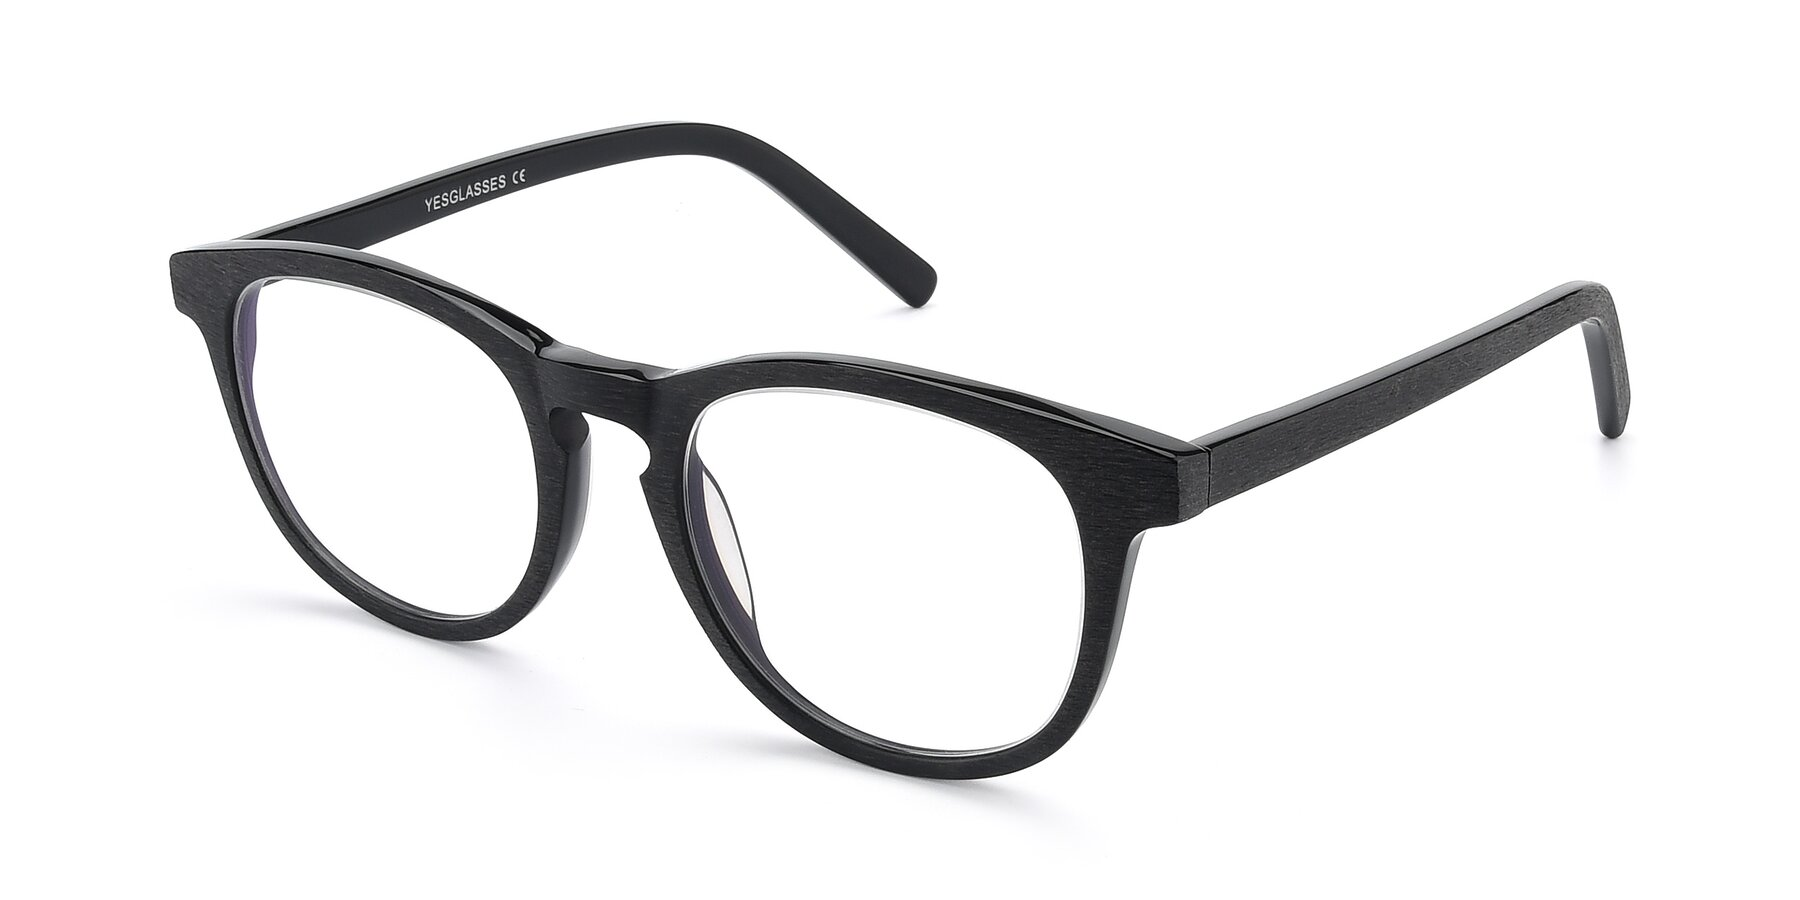 Angle of SR6044 in Black-Wooden with Clear Blue Light Blocking Lenses